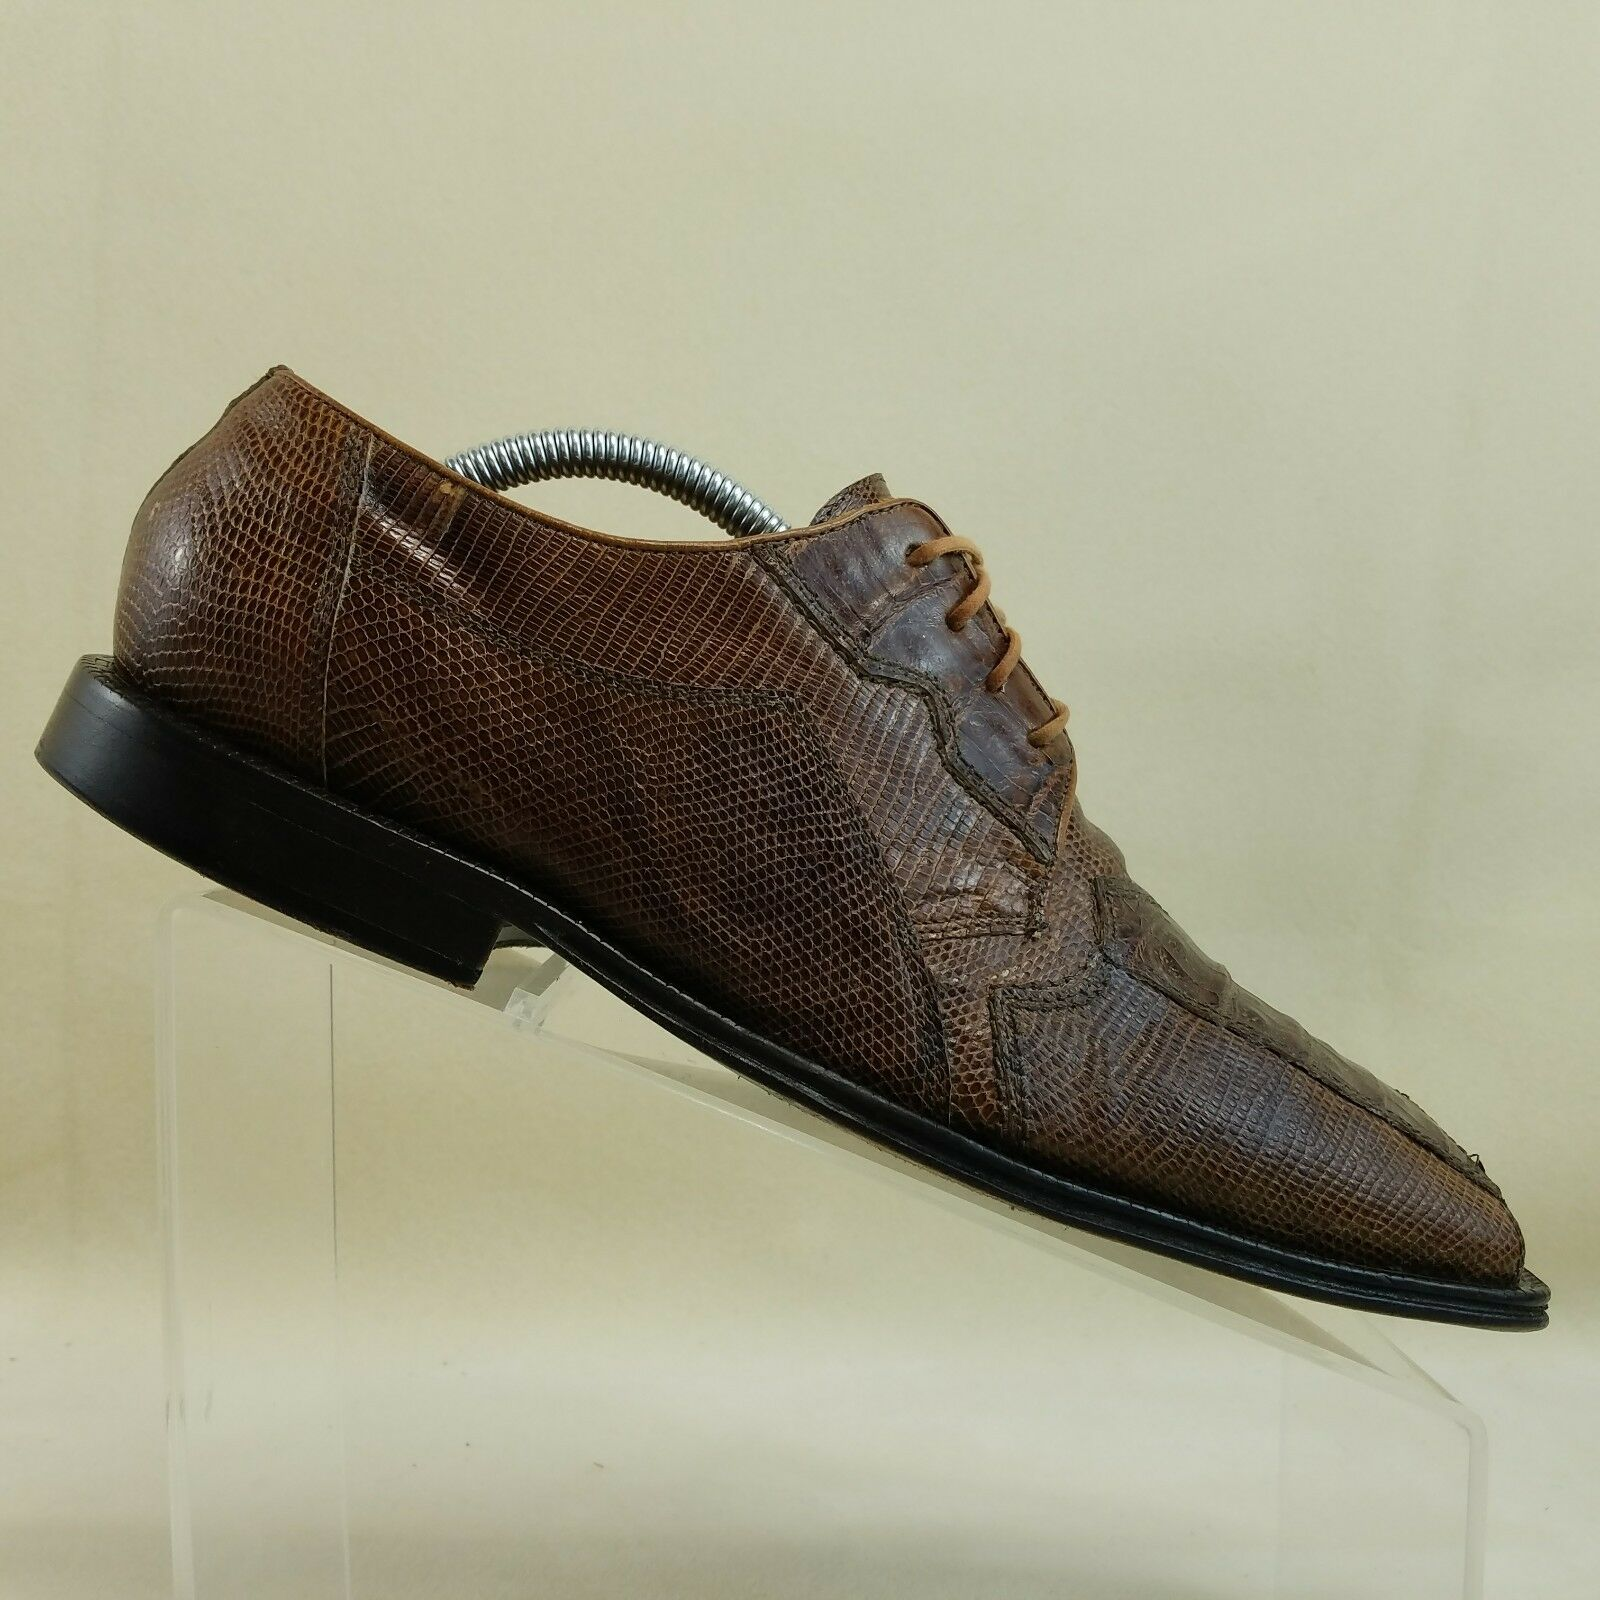 David Eden Mens shoes Size 9 Genuine Crocodile Lizard Brown Handmade Oxfords  F79